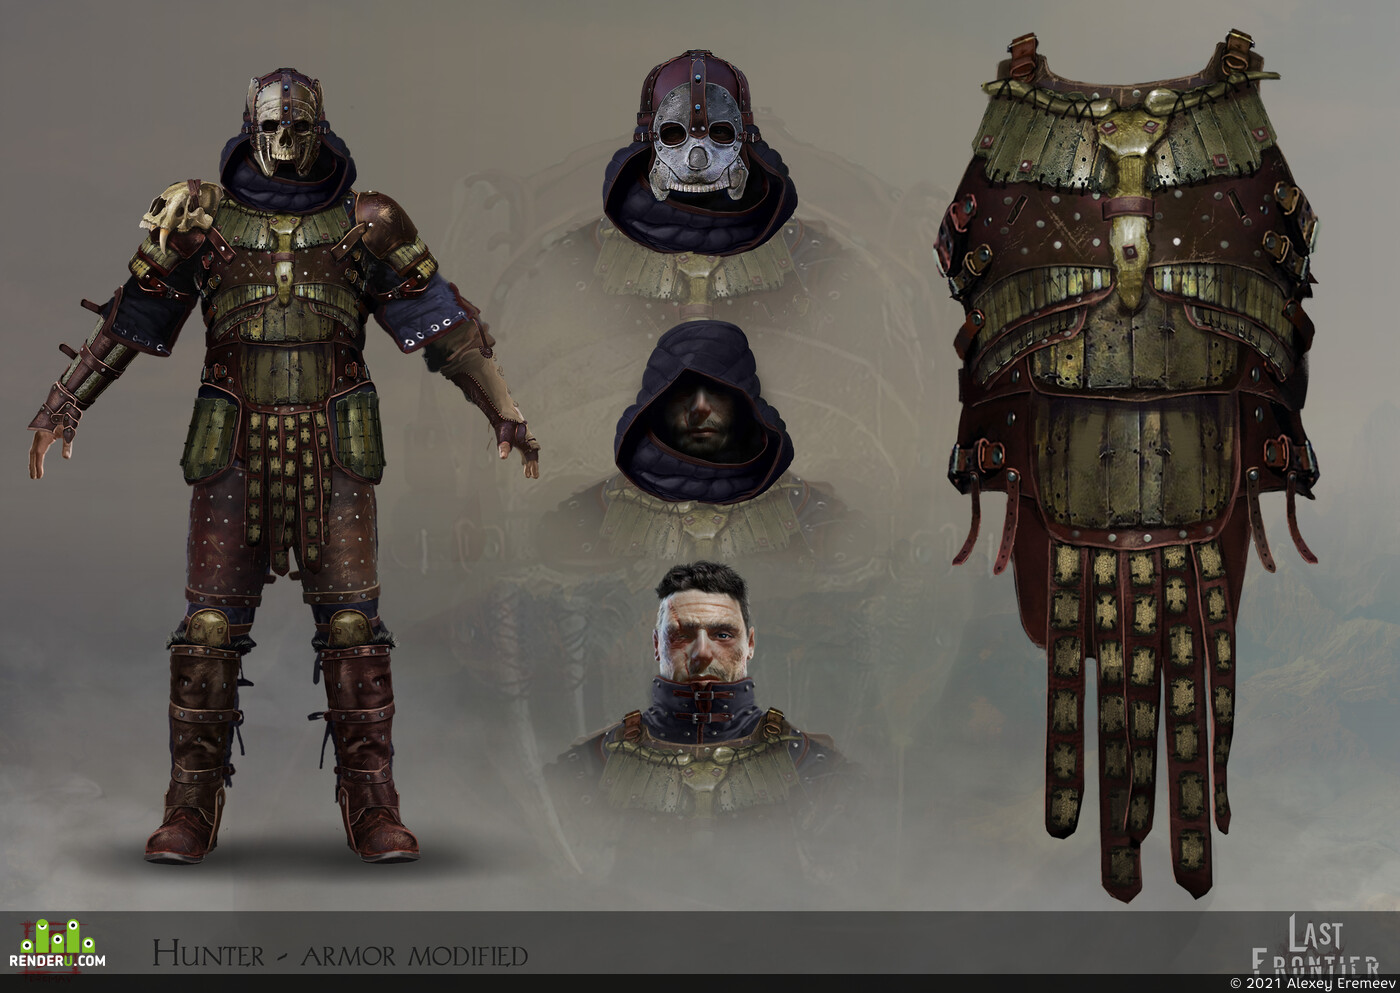 design_character, Character, concept_art, 2dart, knight human head people medieval fantasy fighter character steel armor swordsman weapon game low poly pbr rigged animation unity unreal rpg, Fantasy, blander, adobephotoshop, Концепт-арт, дизайн персонажа